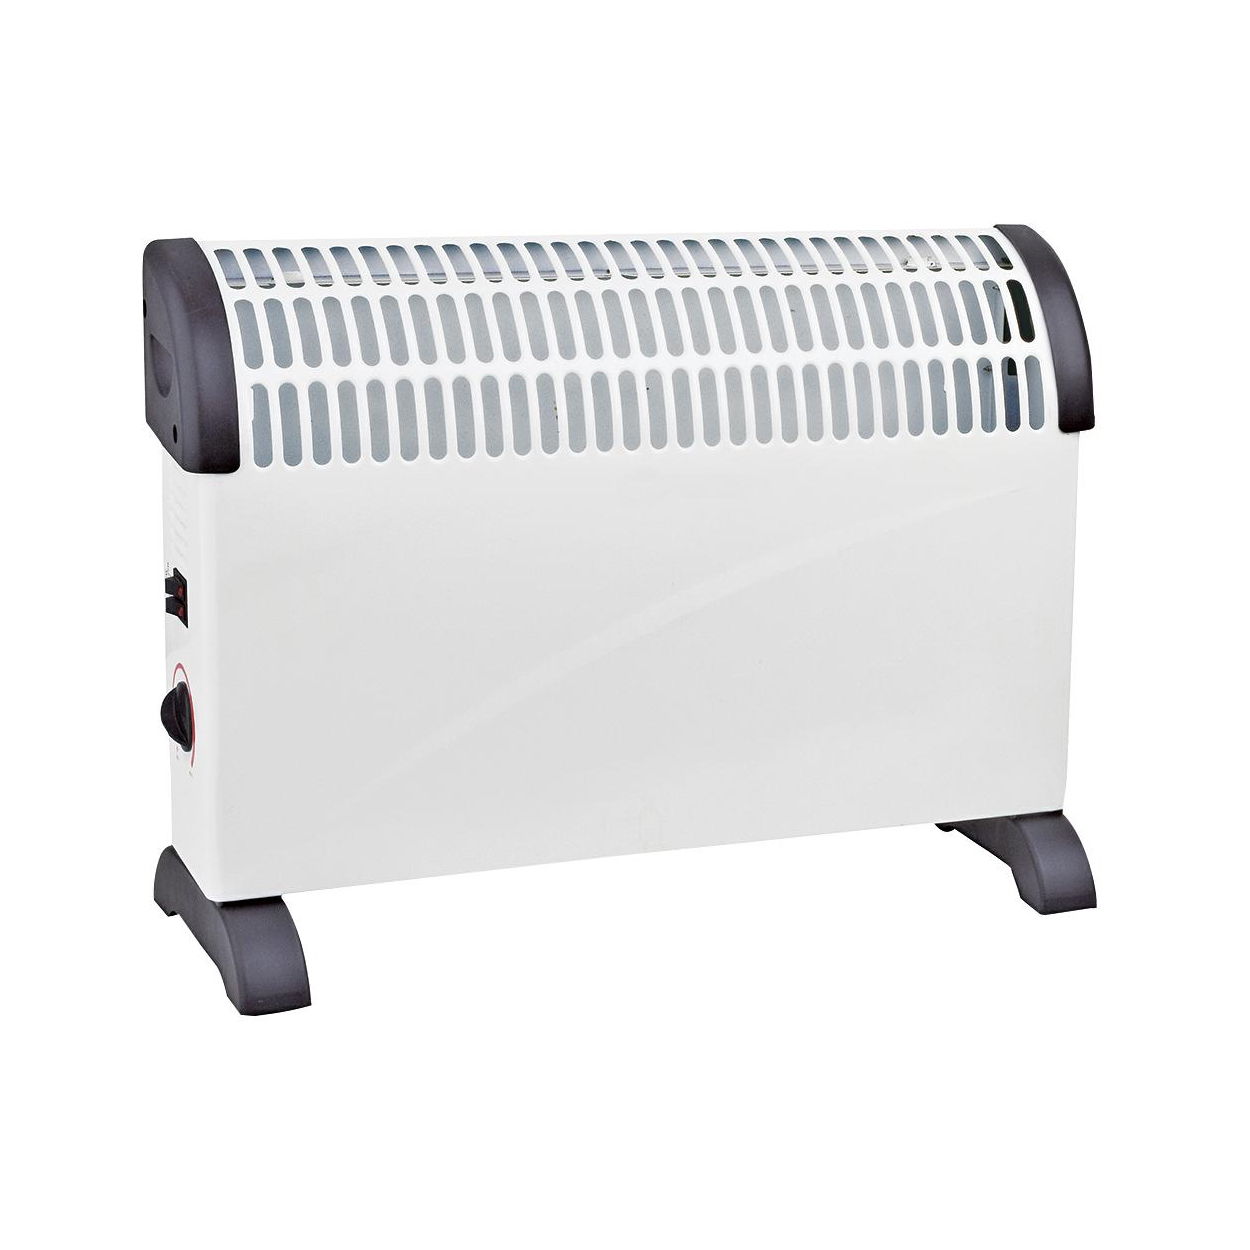 Convection heaters 2kW Convector Heater Floor standing or Wall Mounted White Ref HG01003